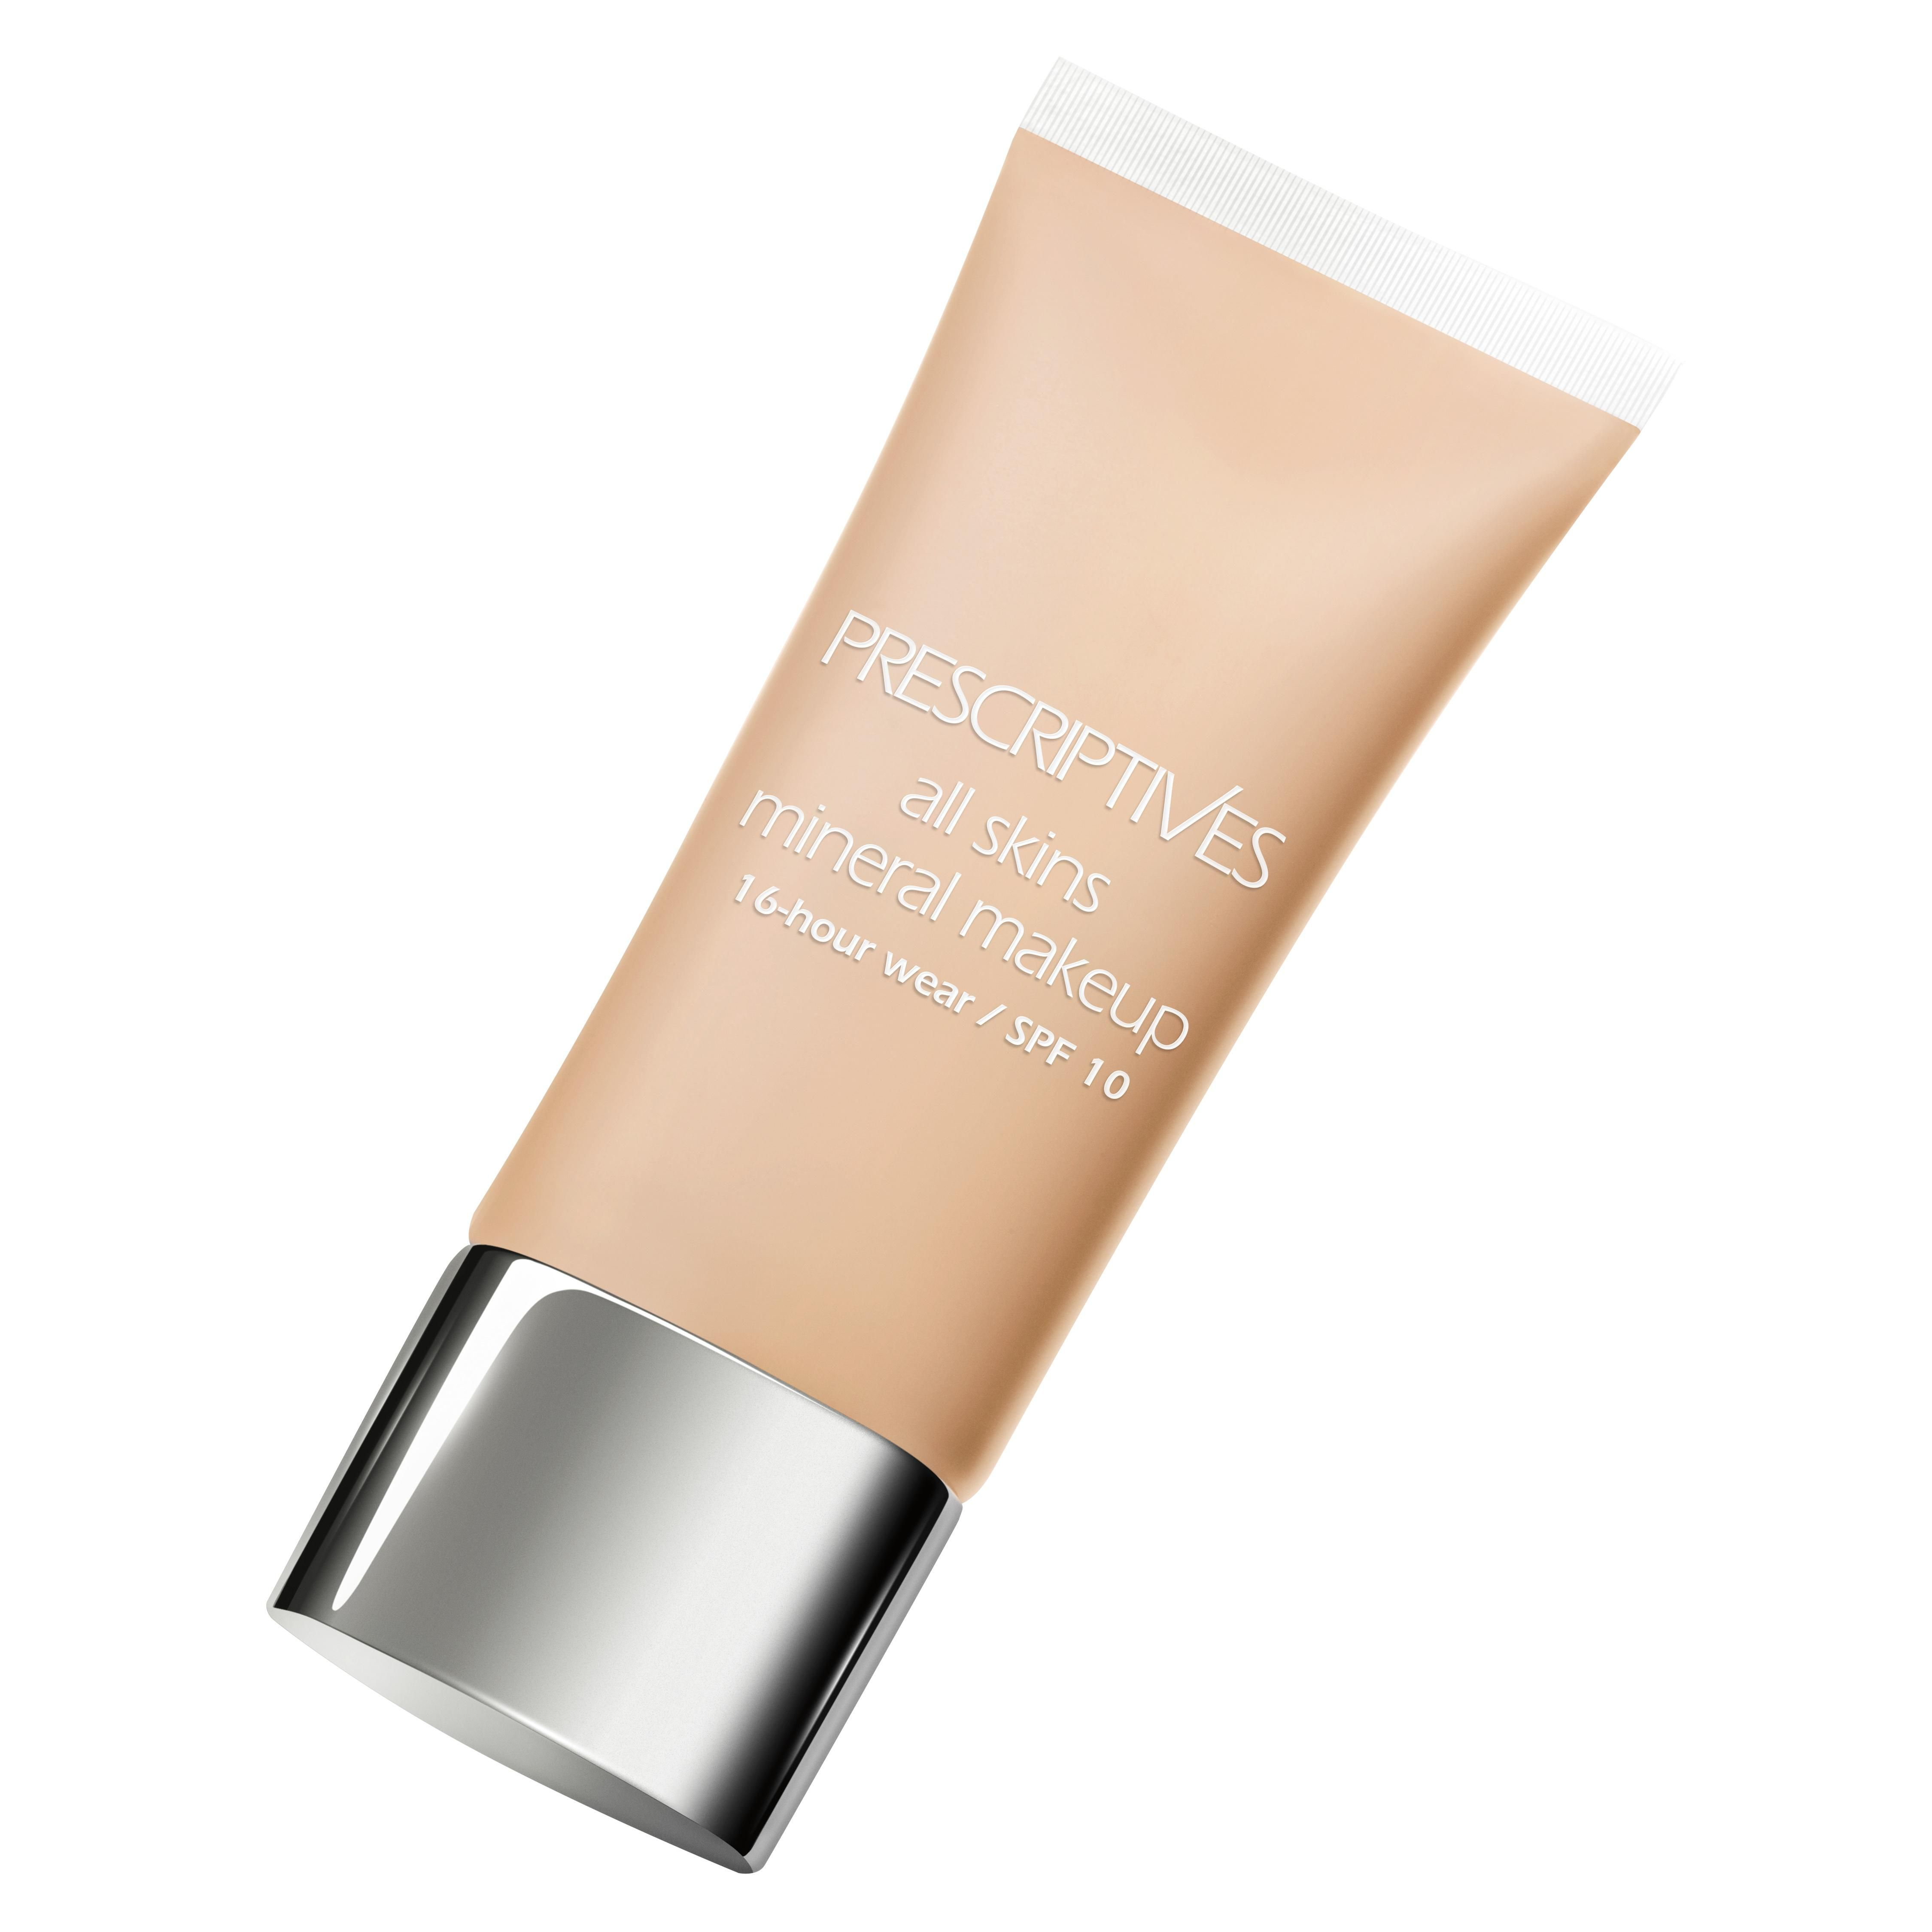 Prescriptives All Skins Mineral Makeup 16 Hour Wear/ SPF